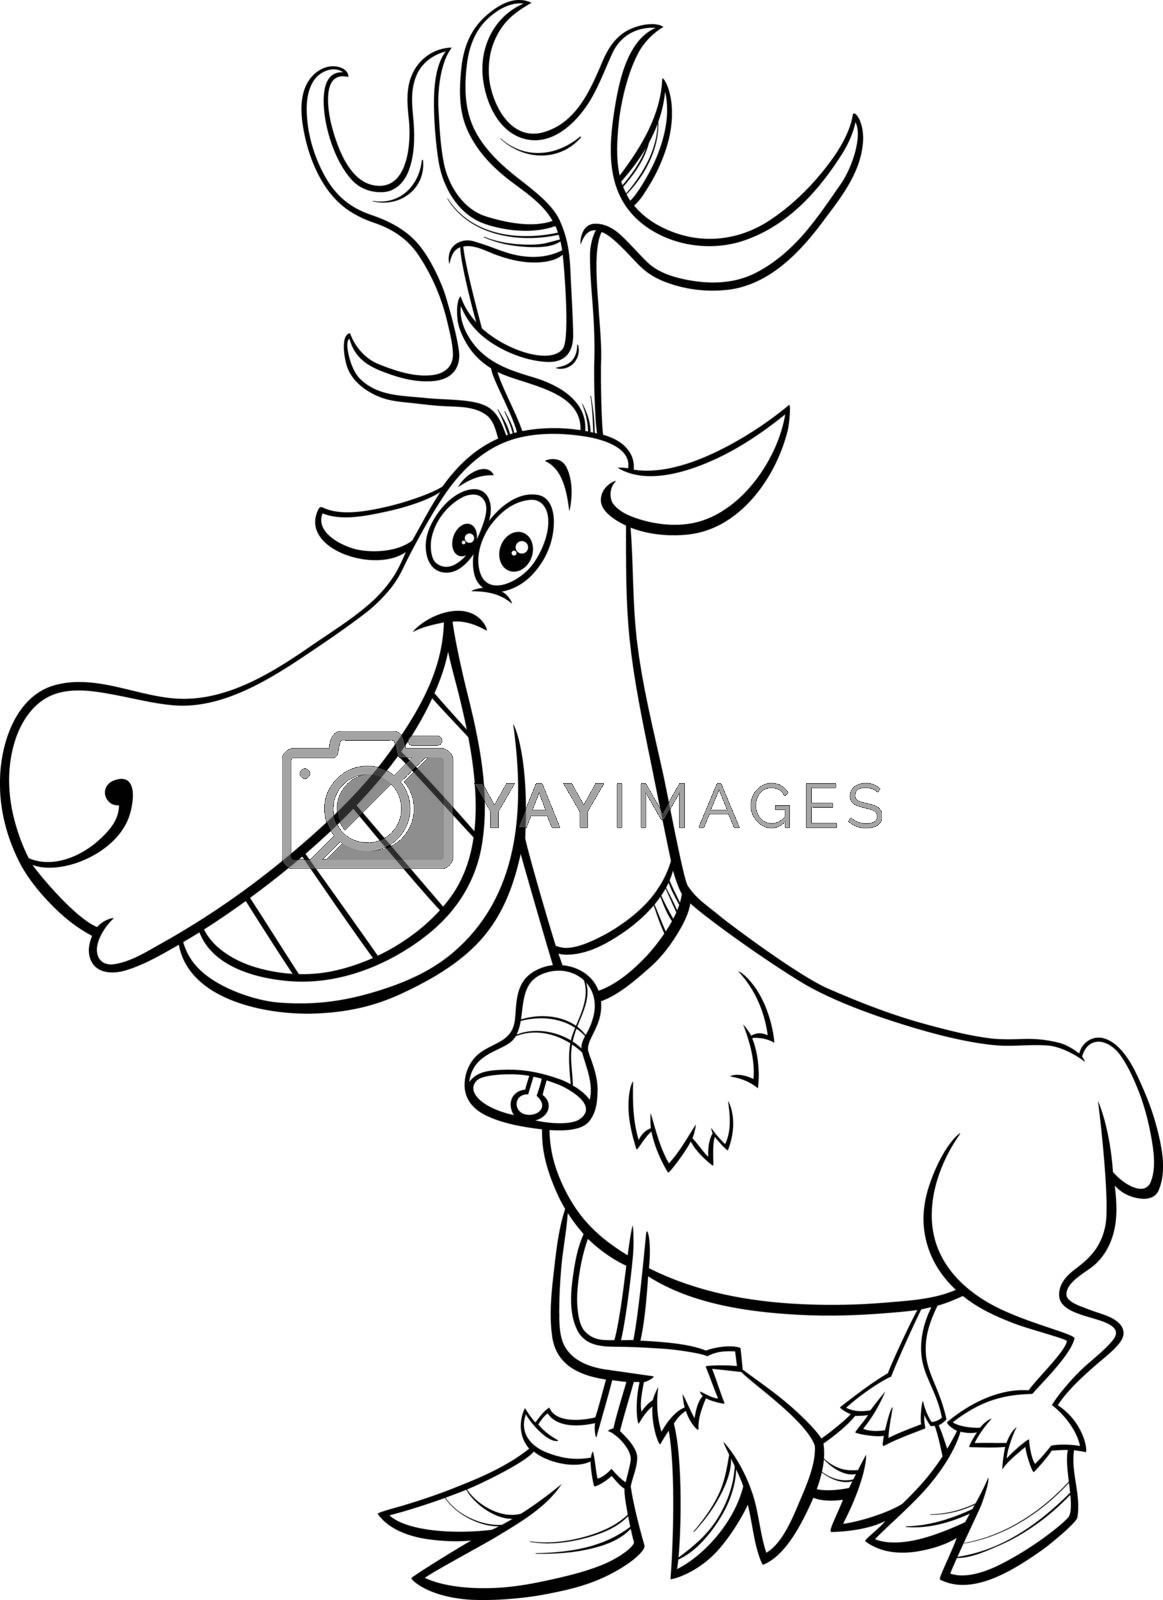 Black and White Cartoon Illustration of Christmas Reindeer Character Coloring Book Page